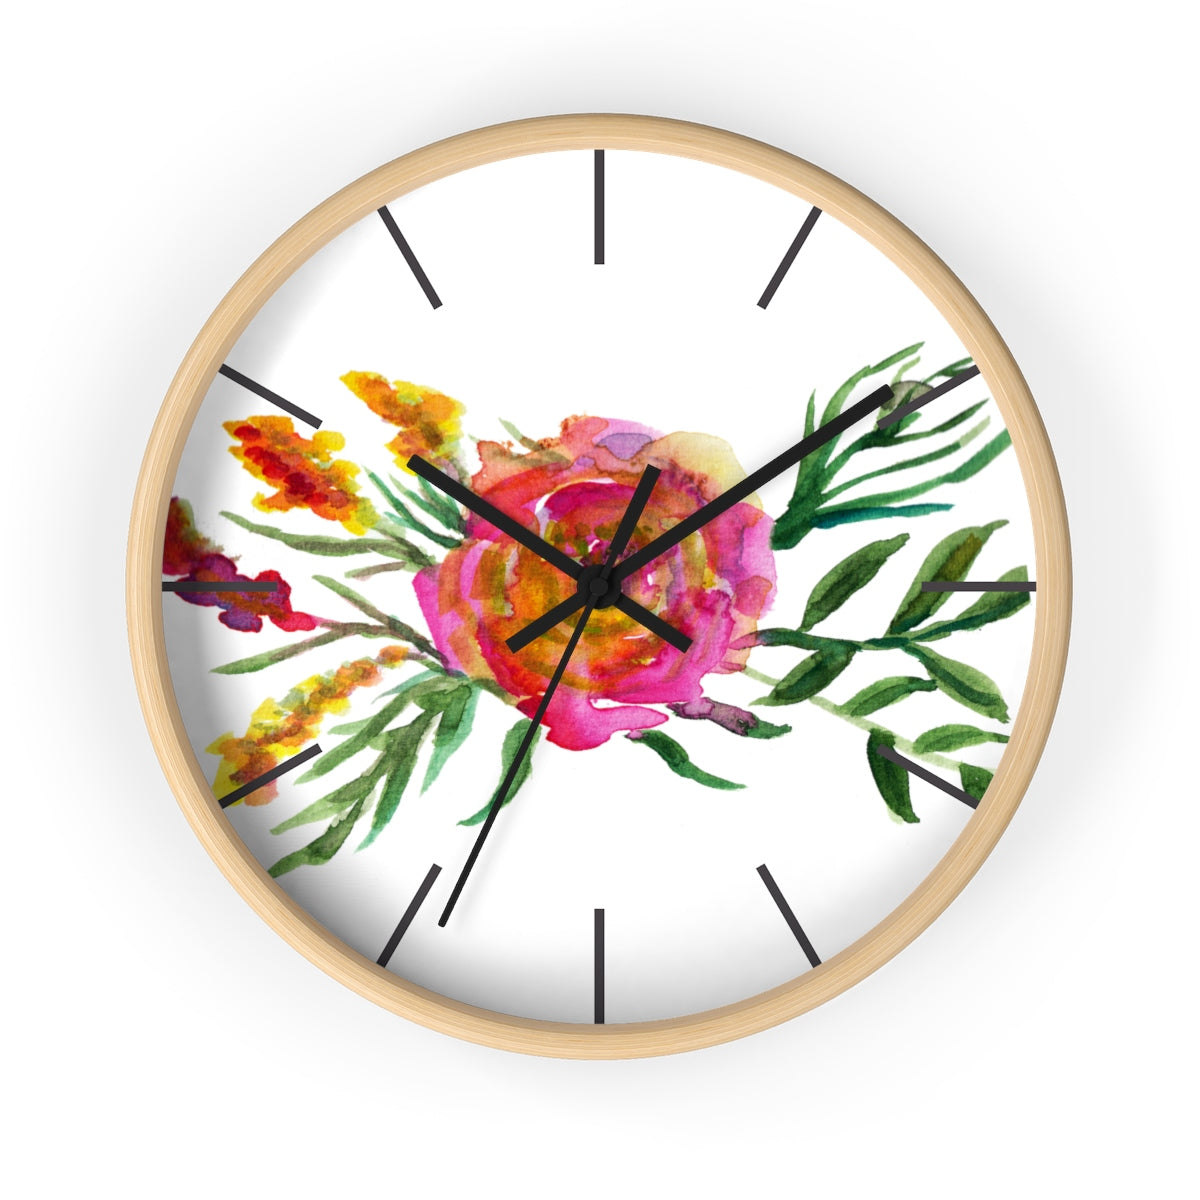 Pink Rose Watercolor Floral Print 10 inch Diameter Flower Wall Clock - Made in USA-Wall Clock-Wooden-Black-Heidi Kimura Art LLC